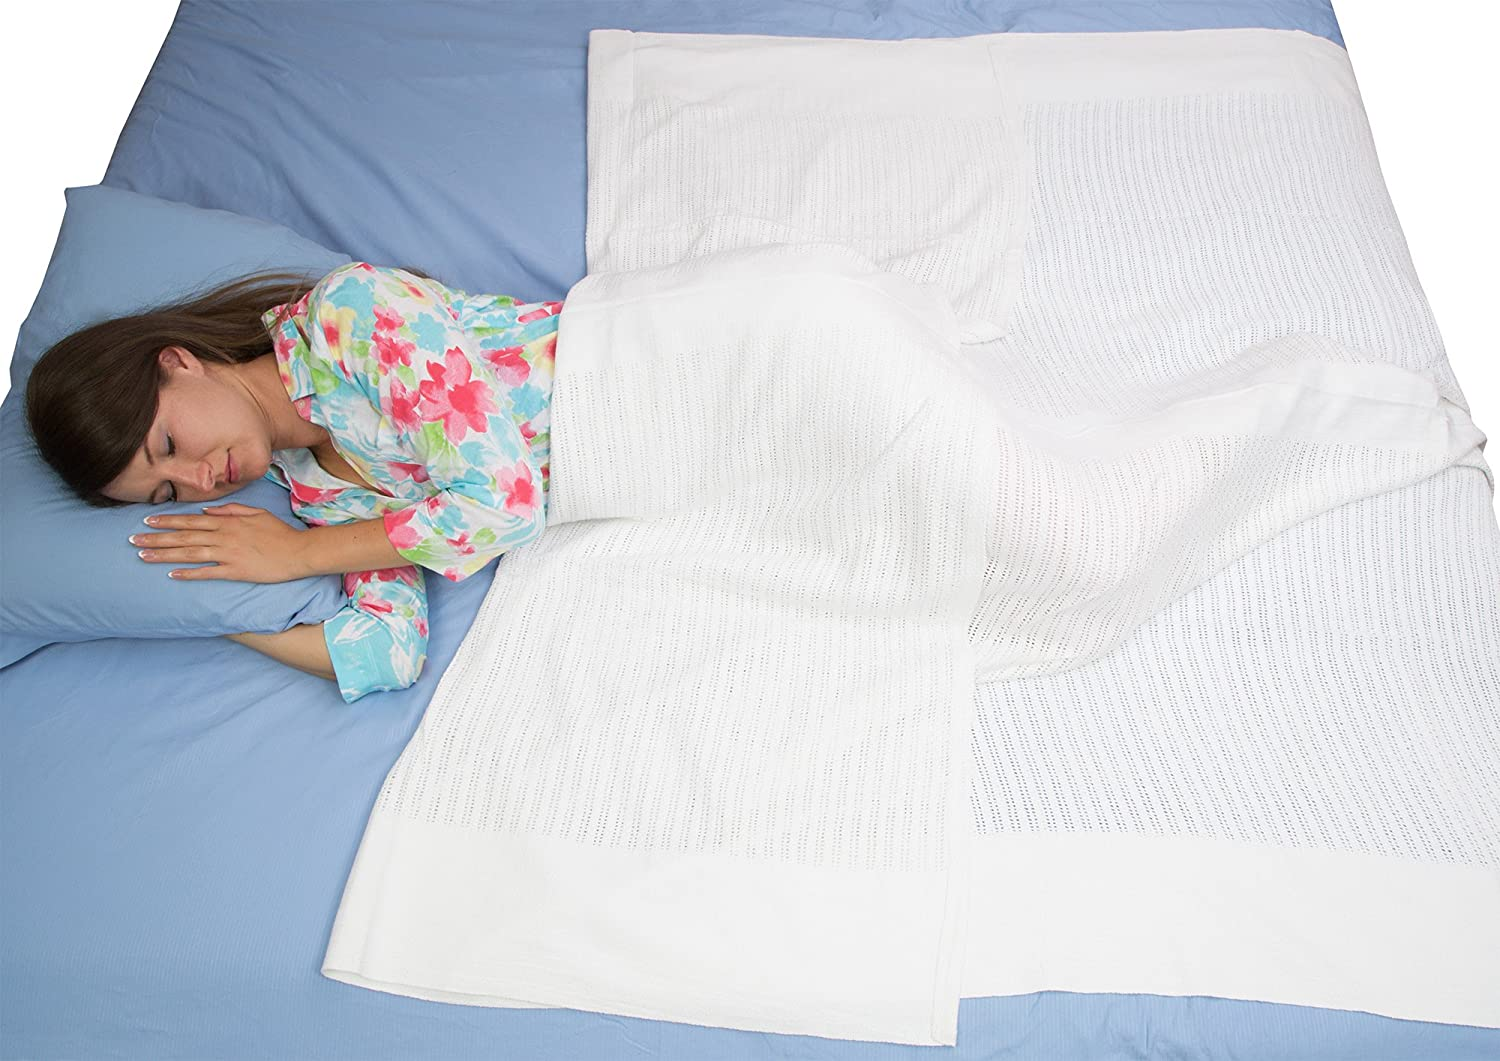 100% Cotton Twin Size Hospital Thermal Blanket - Open Weave Cotton Blankets